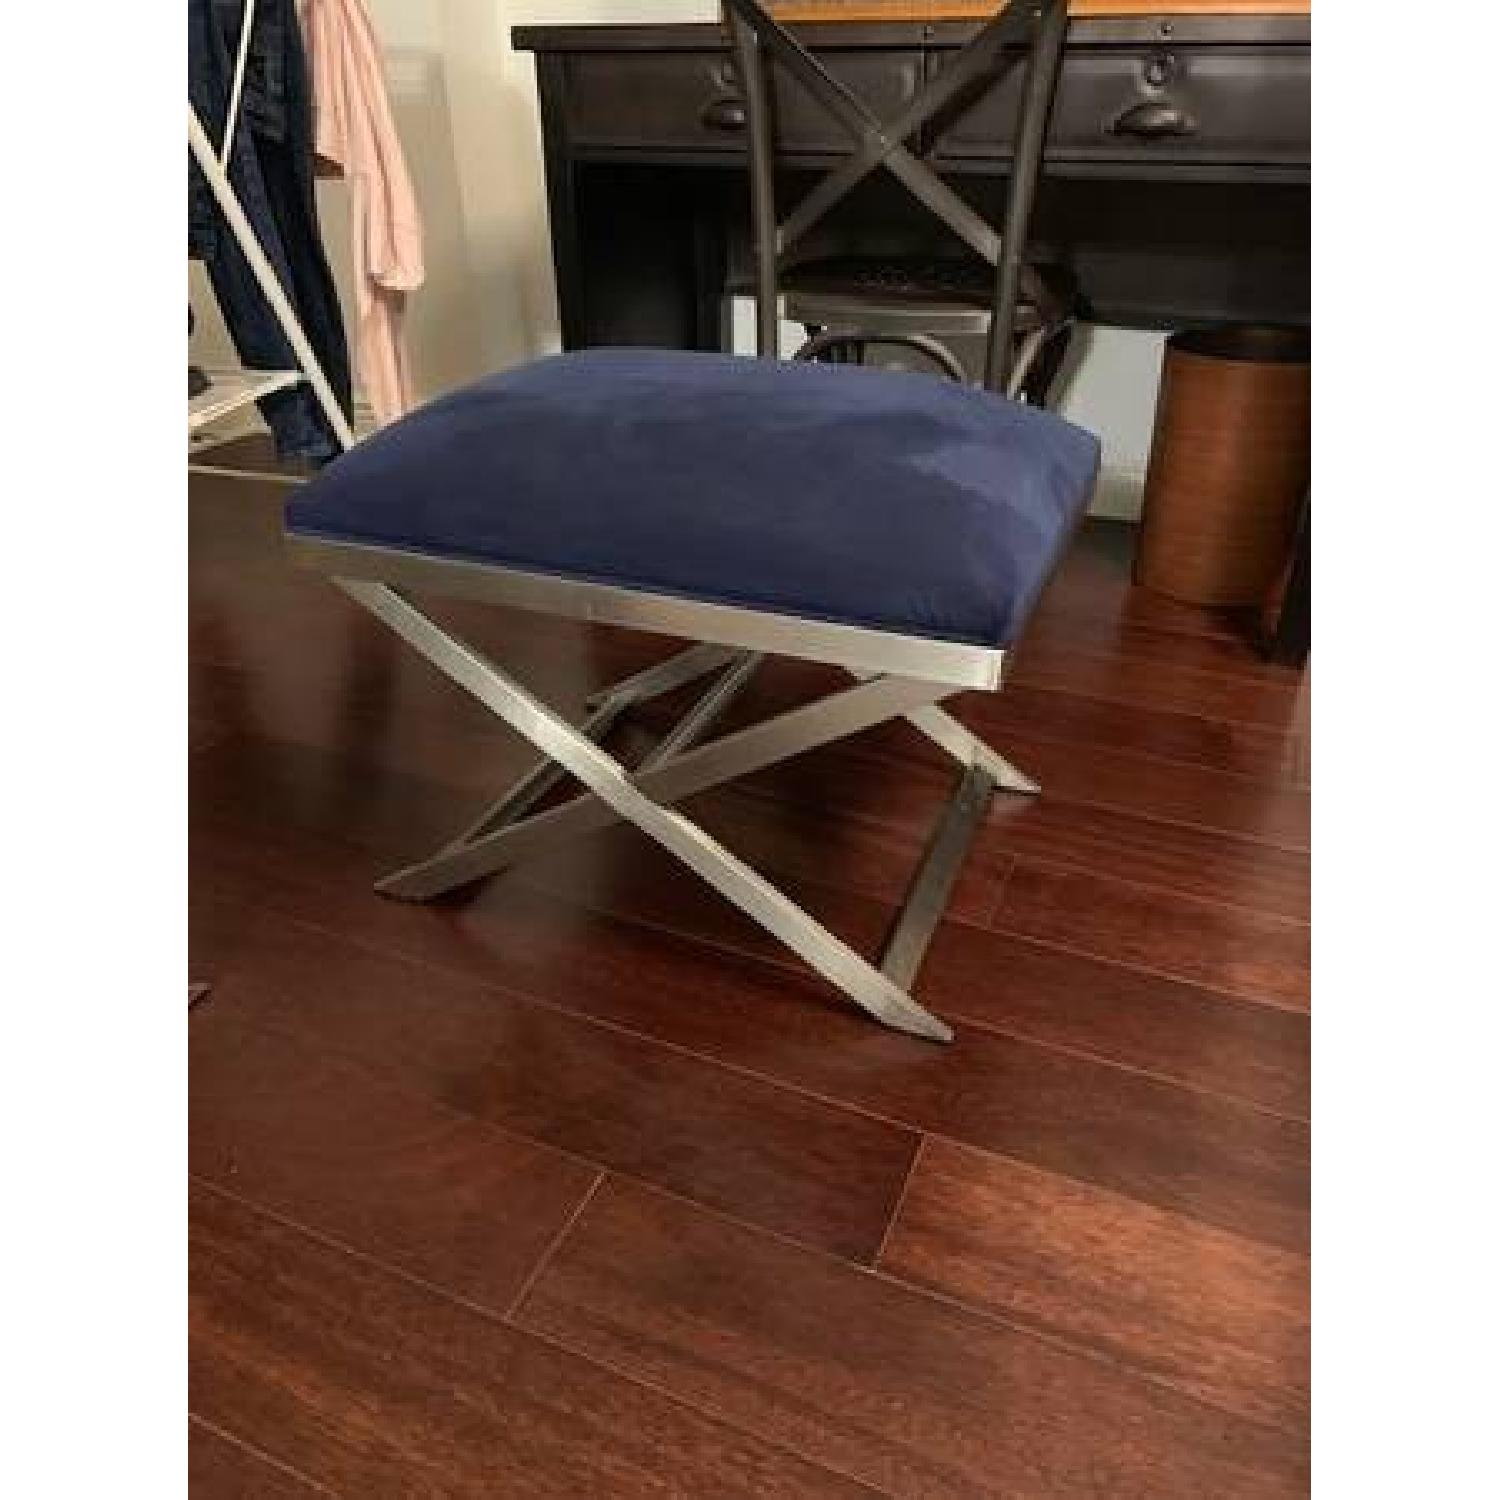 Ethan Allen Xanadu Benches in Blue Fabric on Polished Nickel-0